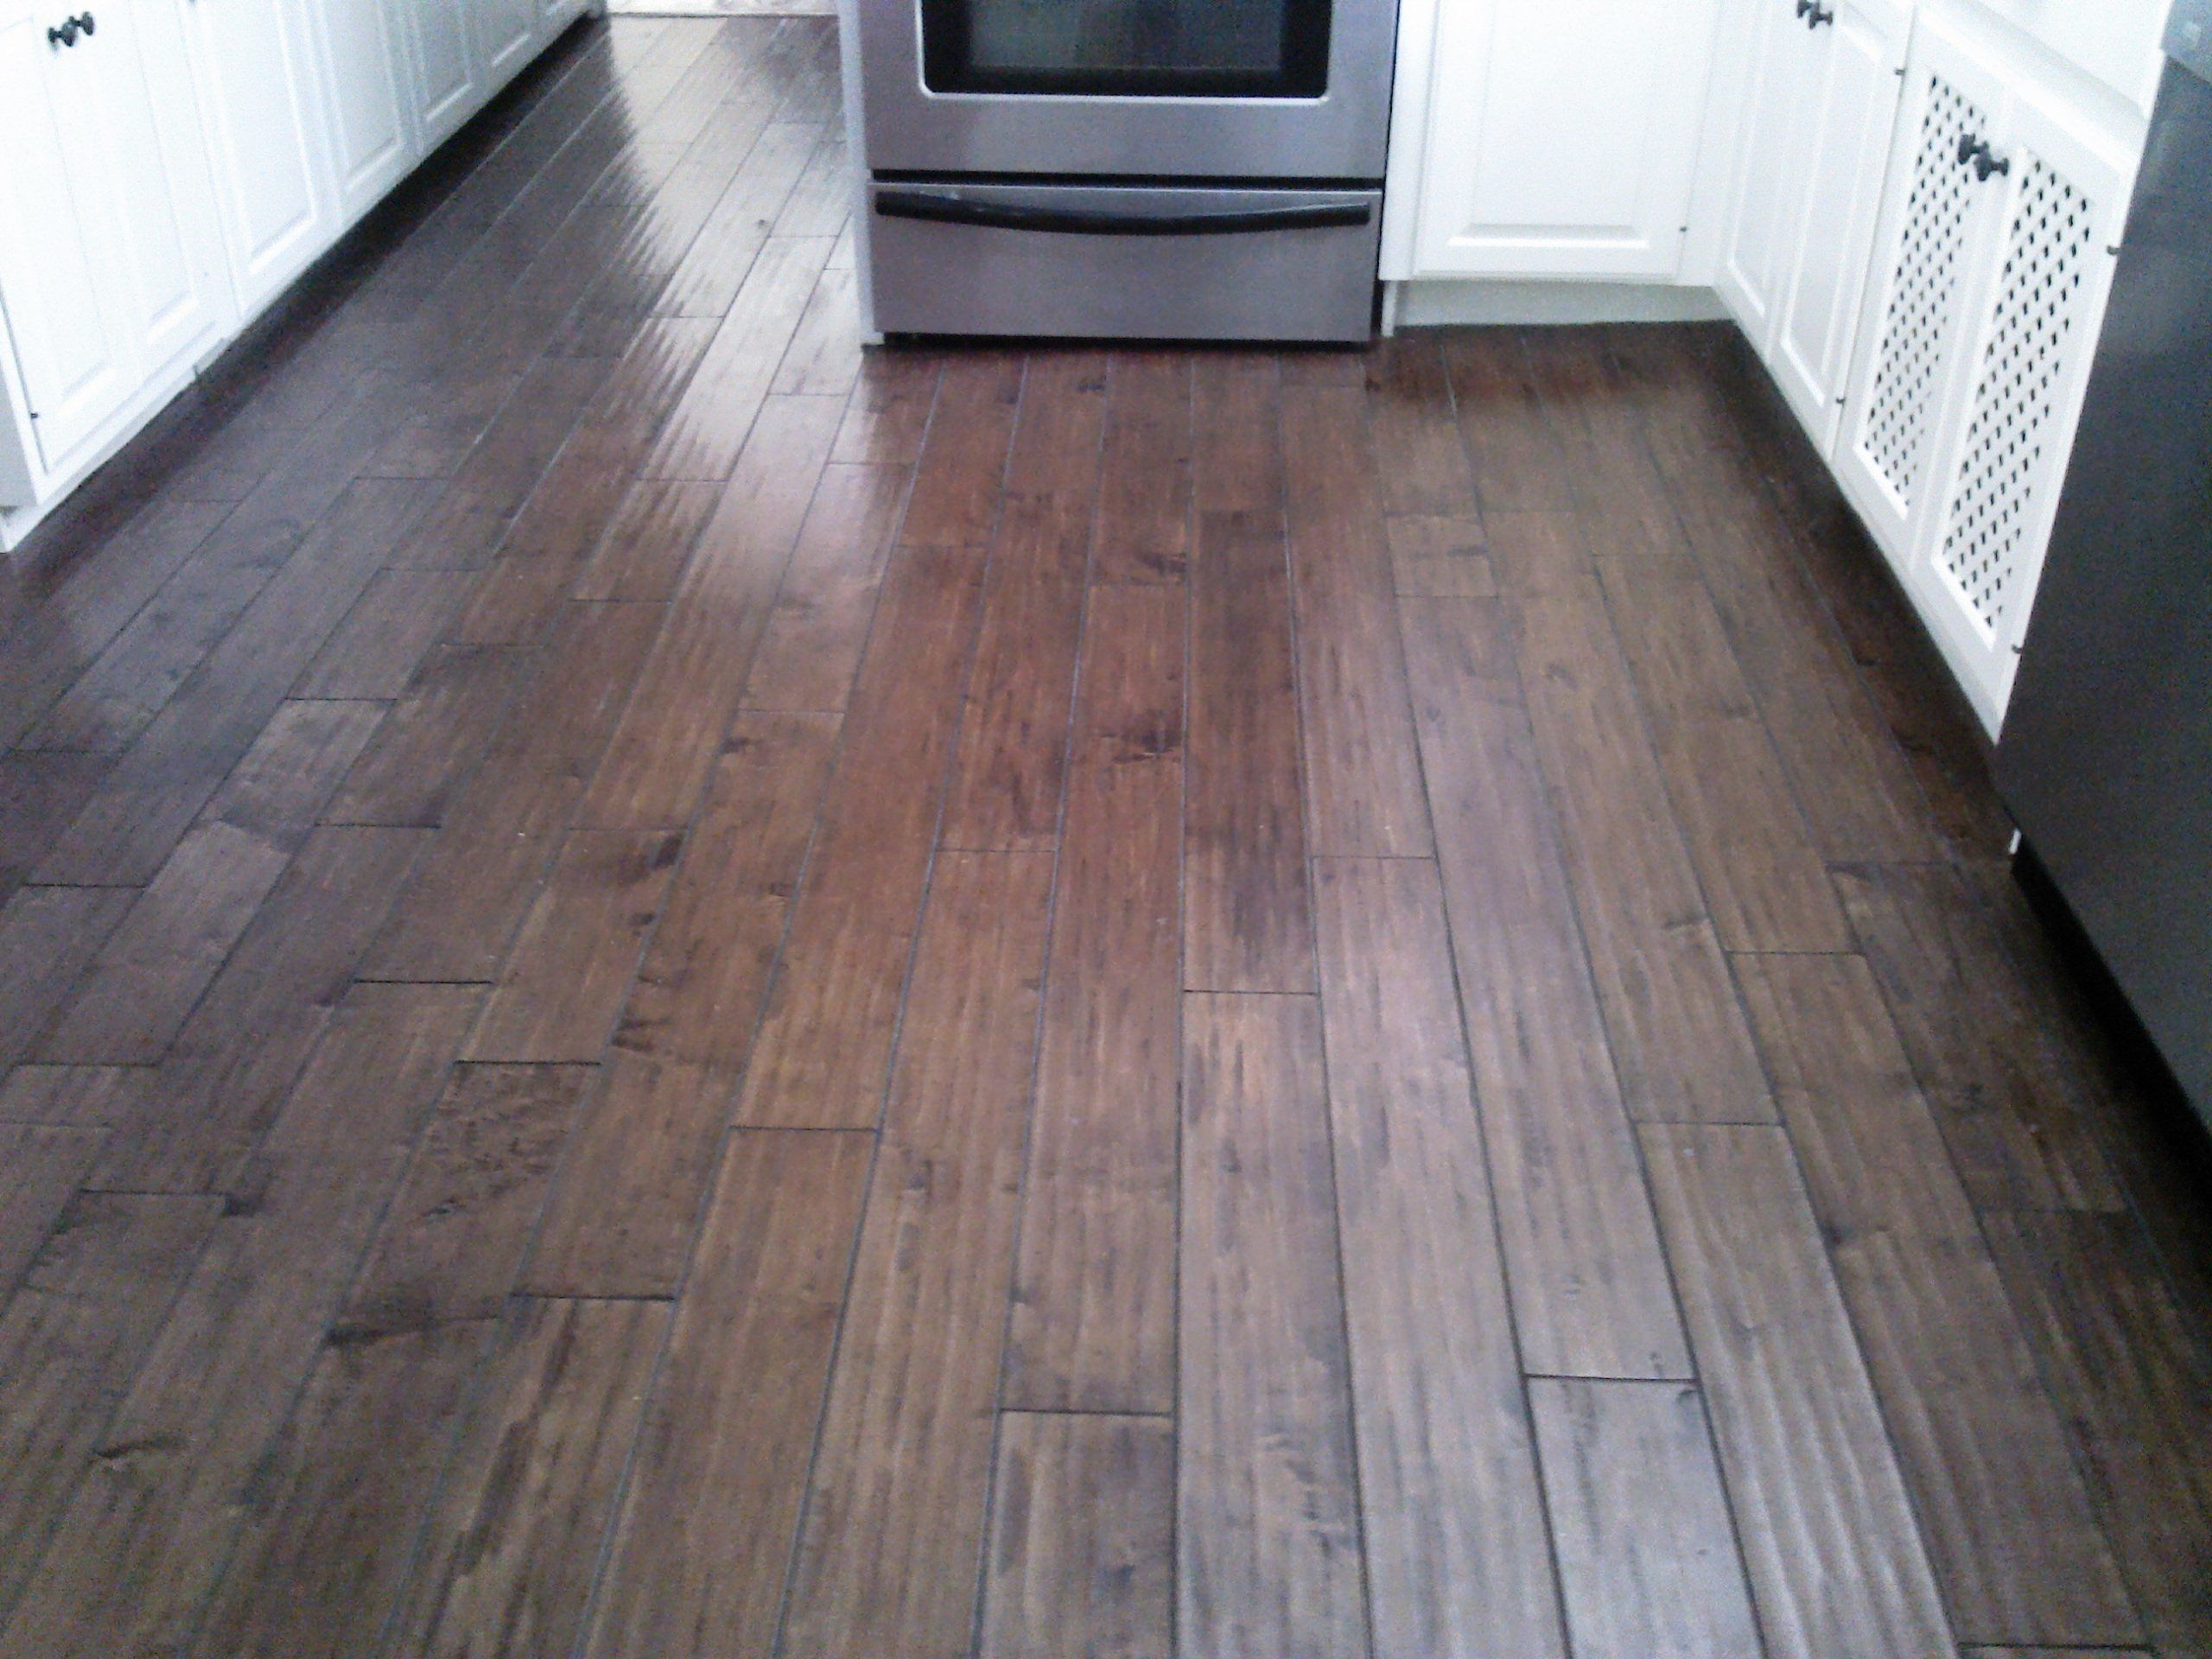 Linoleum Flooring That Looks Like Wood Planks Vinyl Vs Laminate